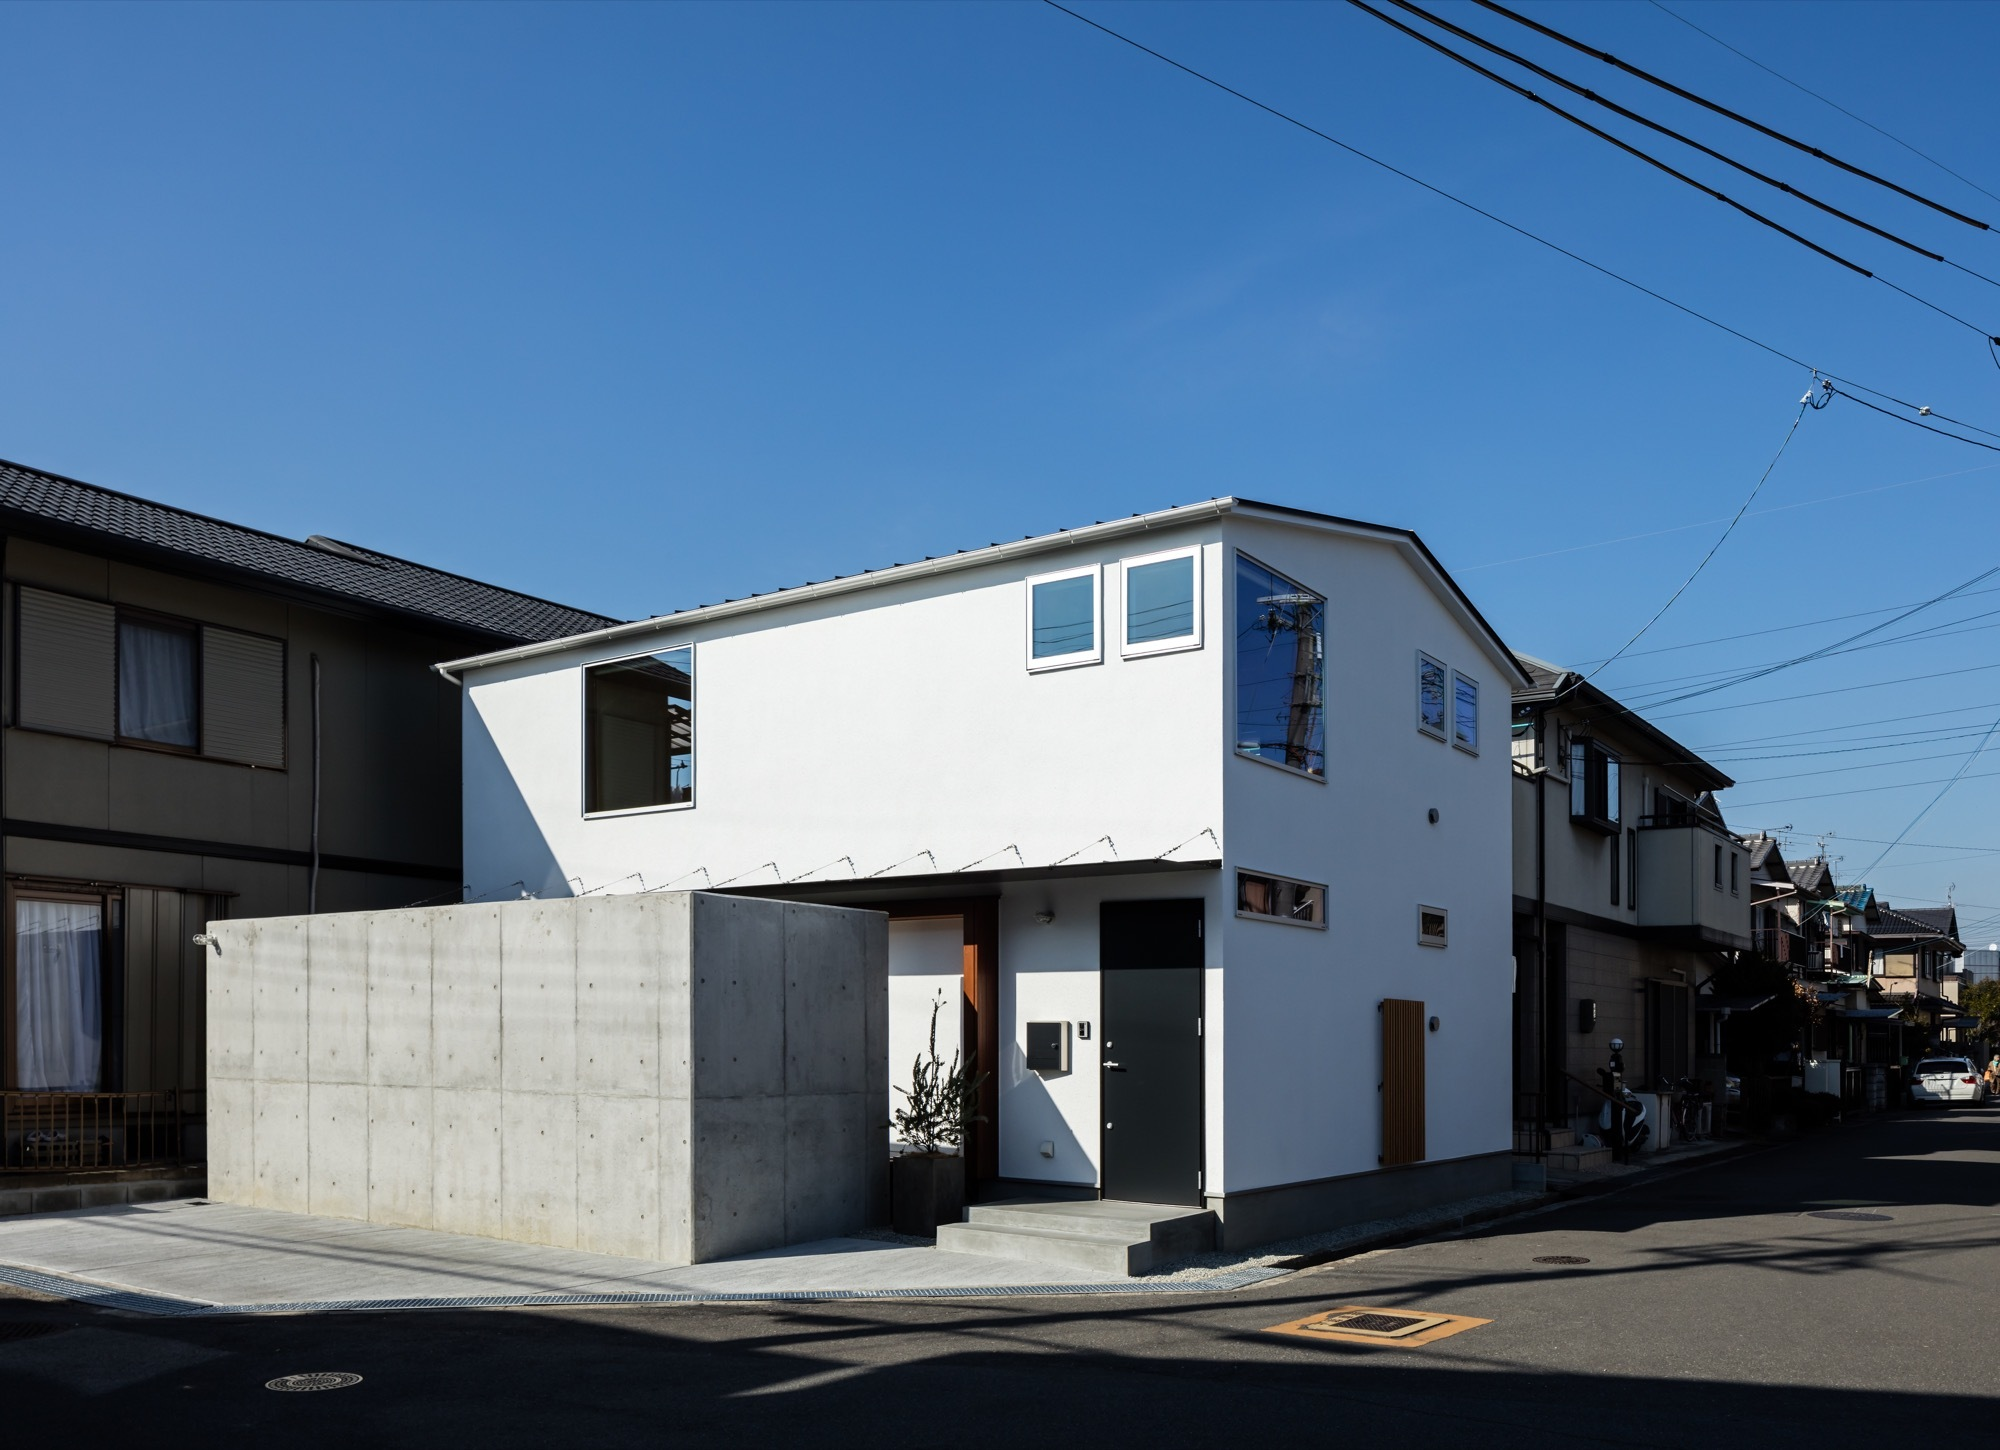 Gallery of s house coil kazuteru matumura architects 21 for What is a shouse house